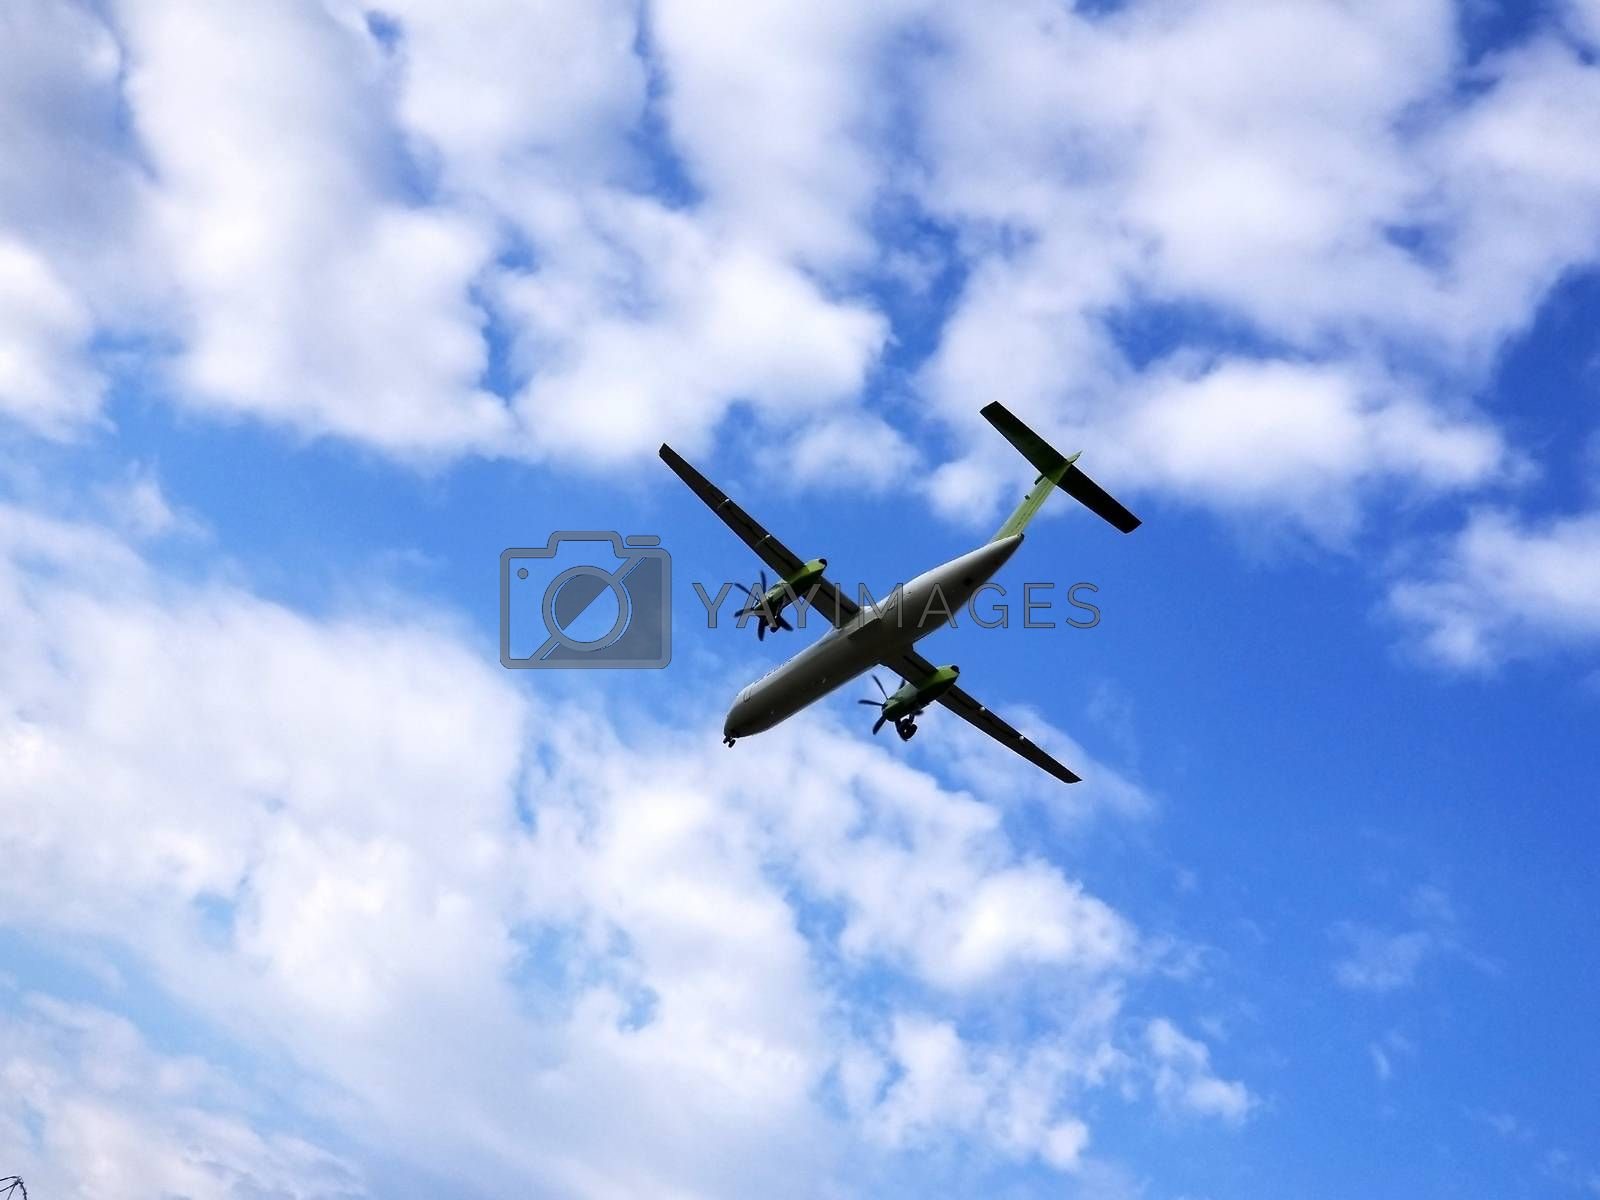 View from above on airplane in flight. Aircraft is flying in blue cloudy sky. Silhuette airplane on the cloudy sky.